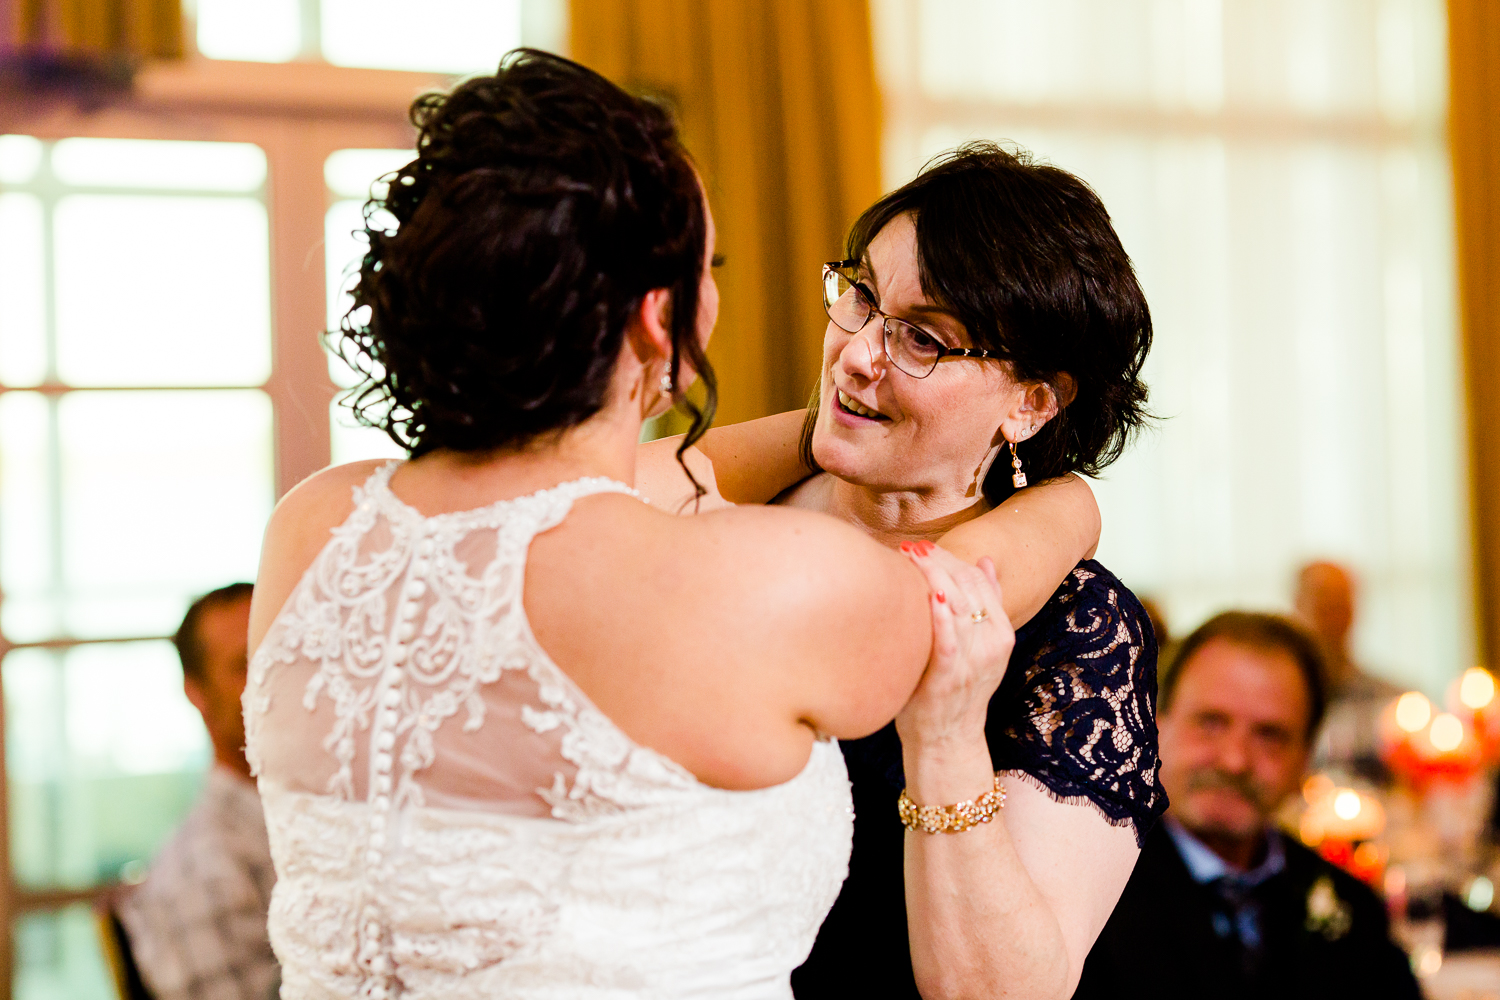 A mother daughter dance. The mother is smiling at her daughter. The back of the brides dress is covered in lace.